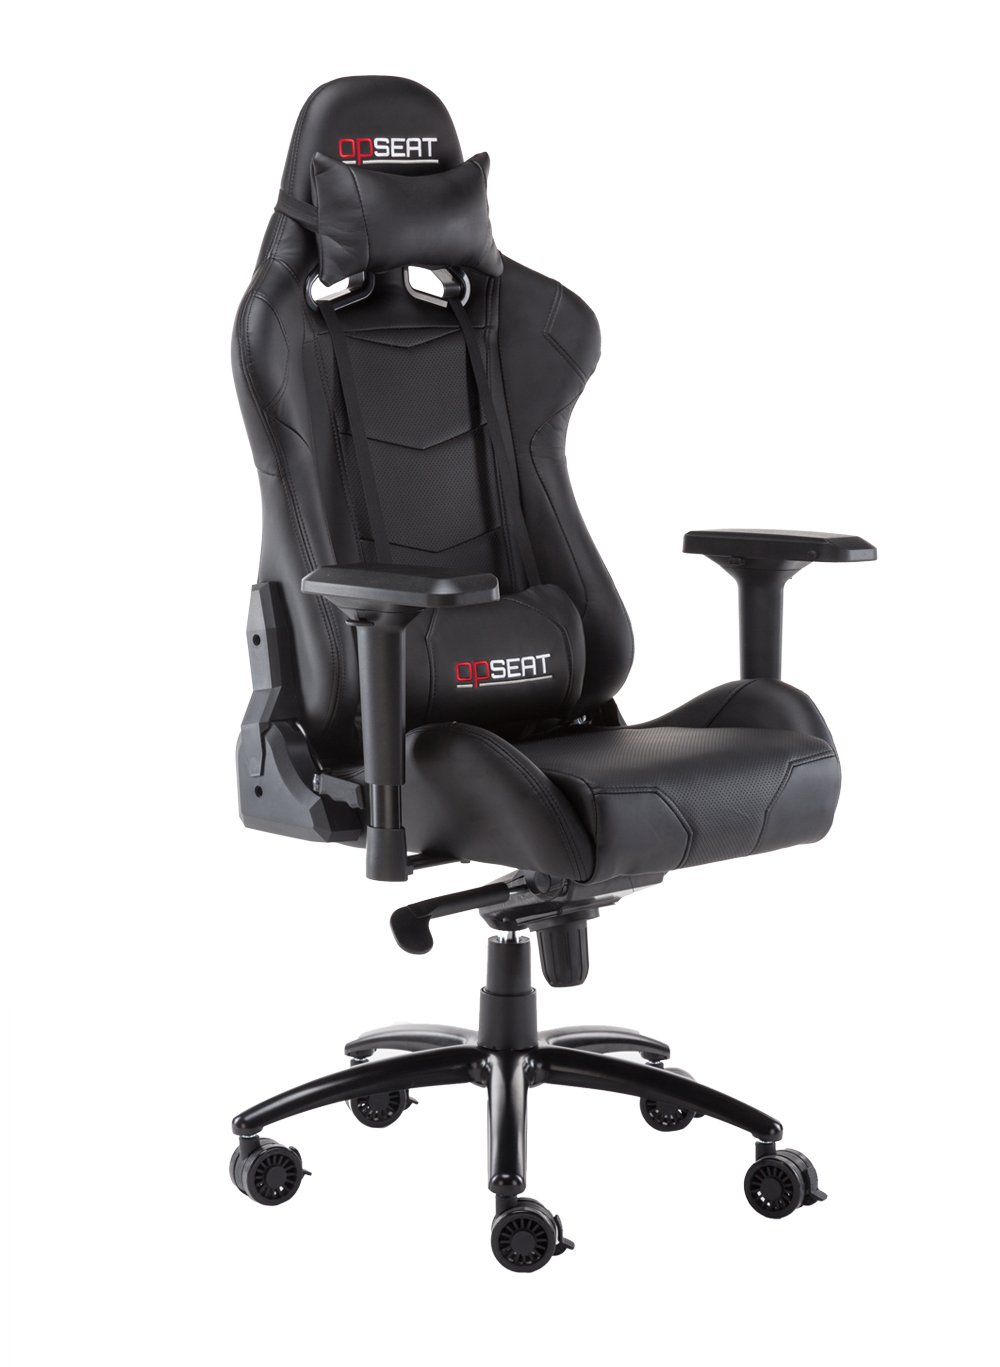 OPSEAT Master Series 2018 PC Gaming Chair Racing Seat Computer Gaming Desk Office Chair - Black